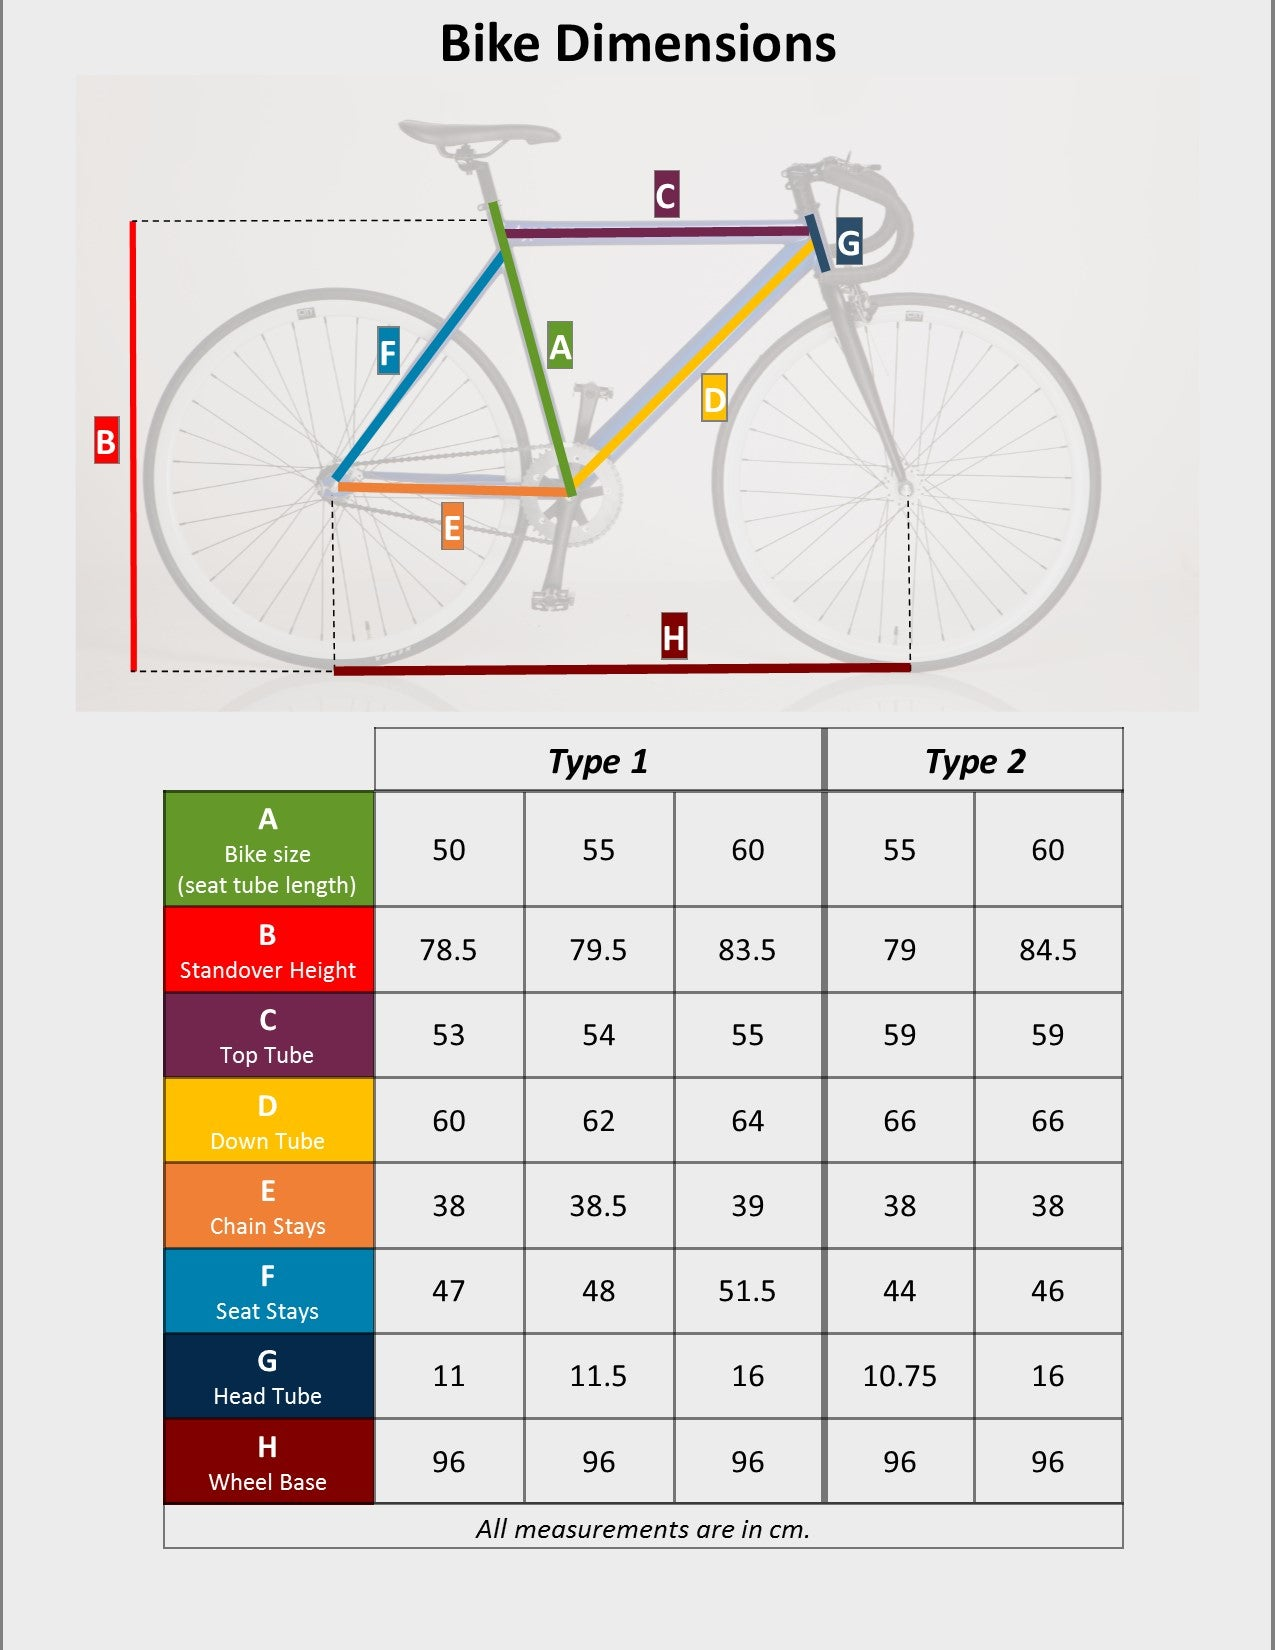 City Bicycle Co Dimensions